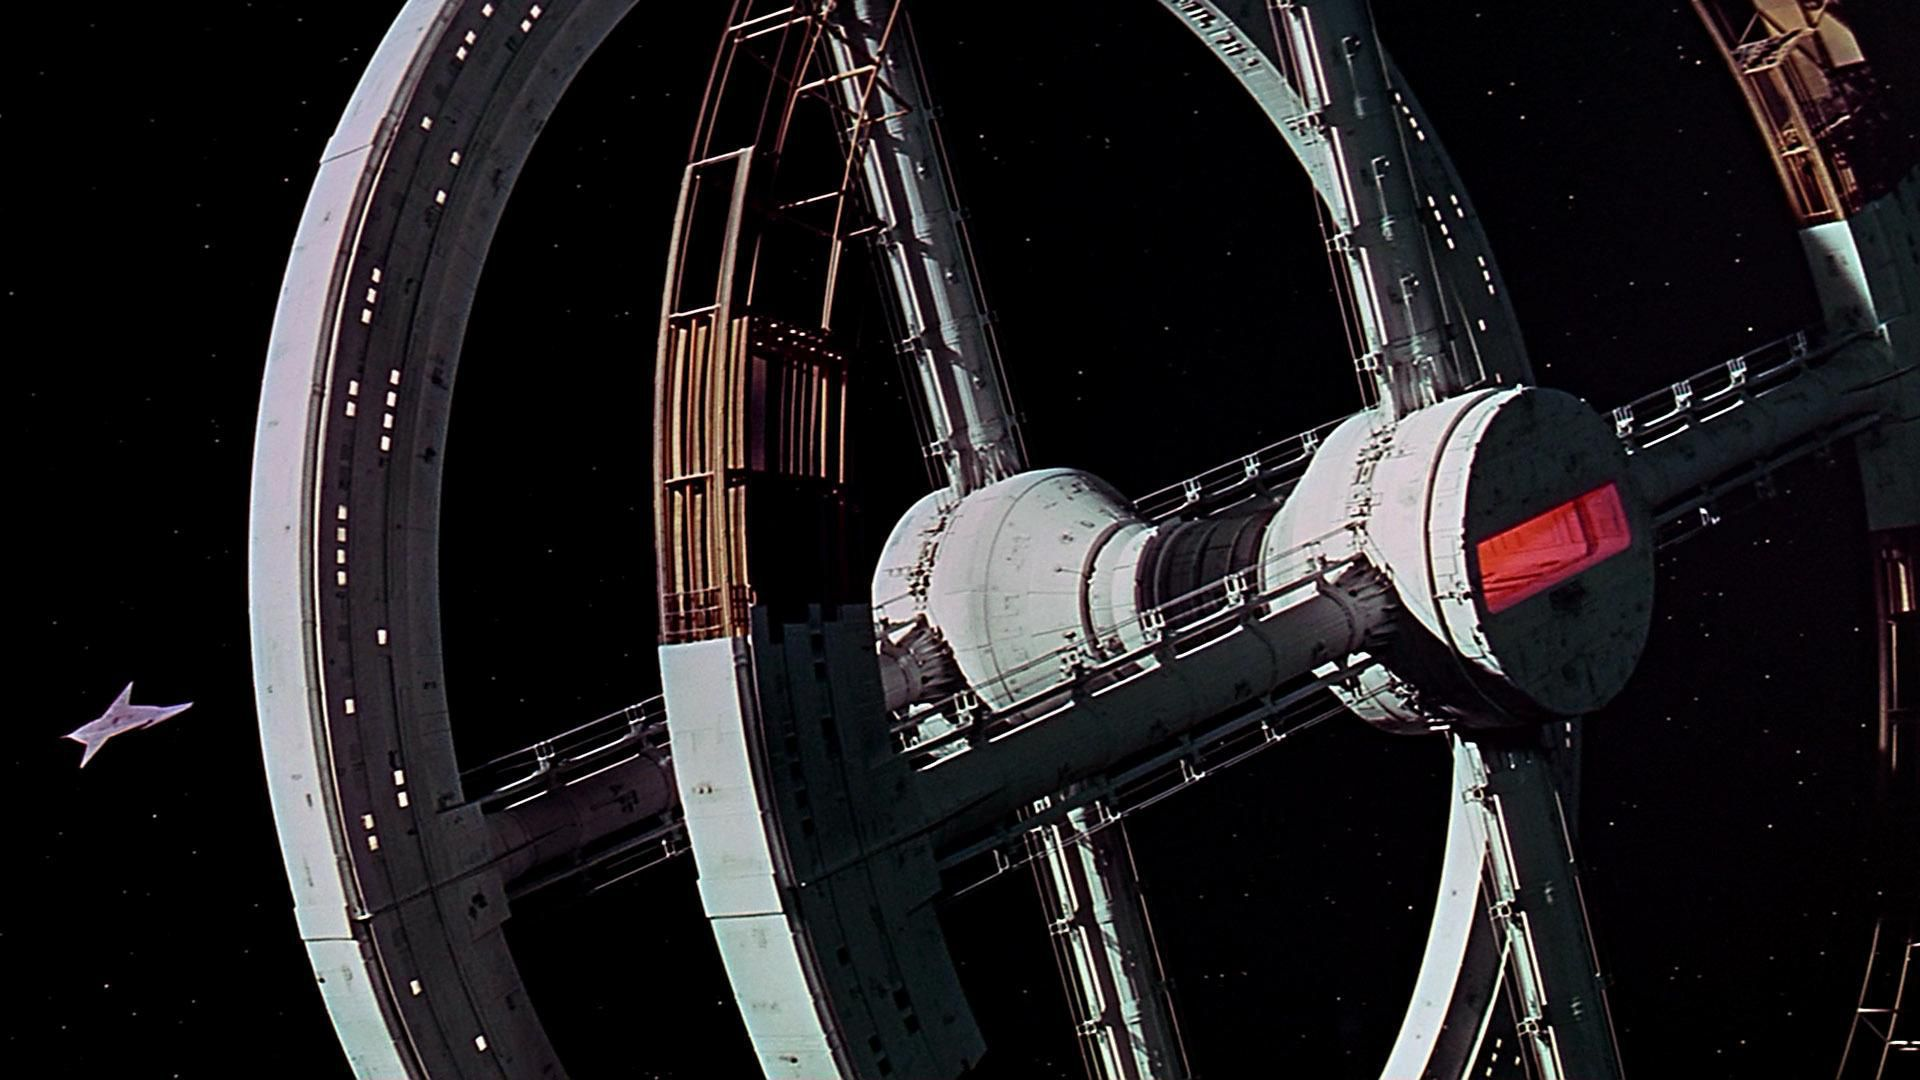 2001 A Space Odyssey Wallpapers Hd